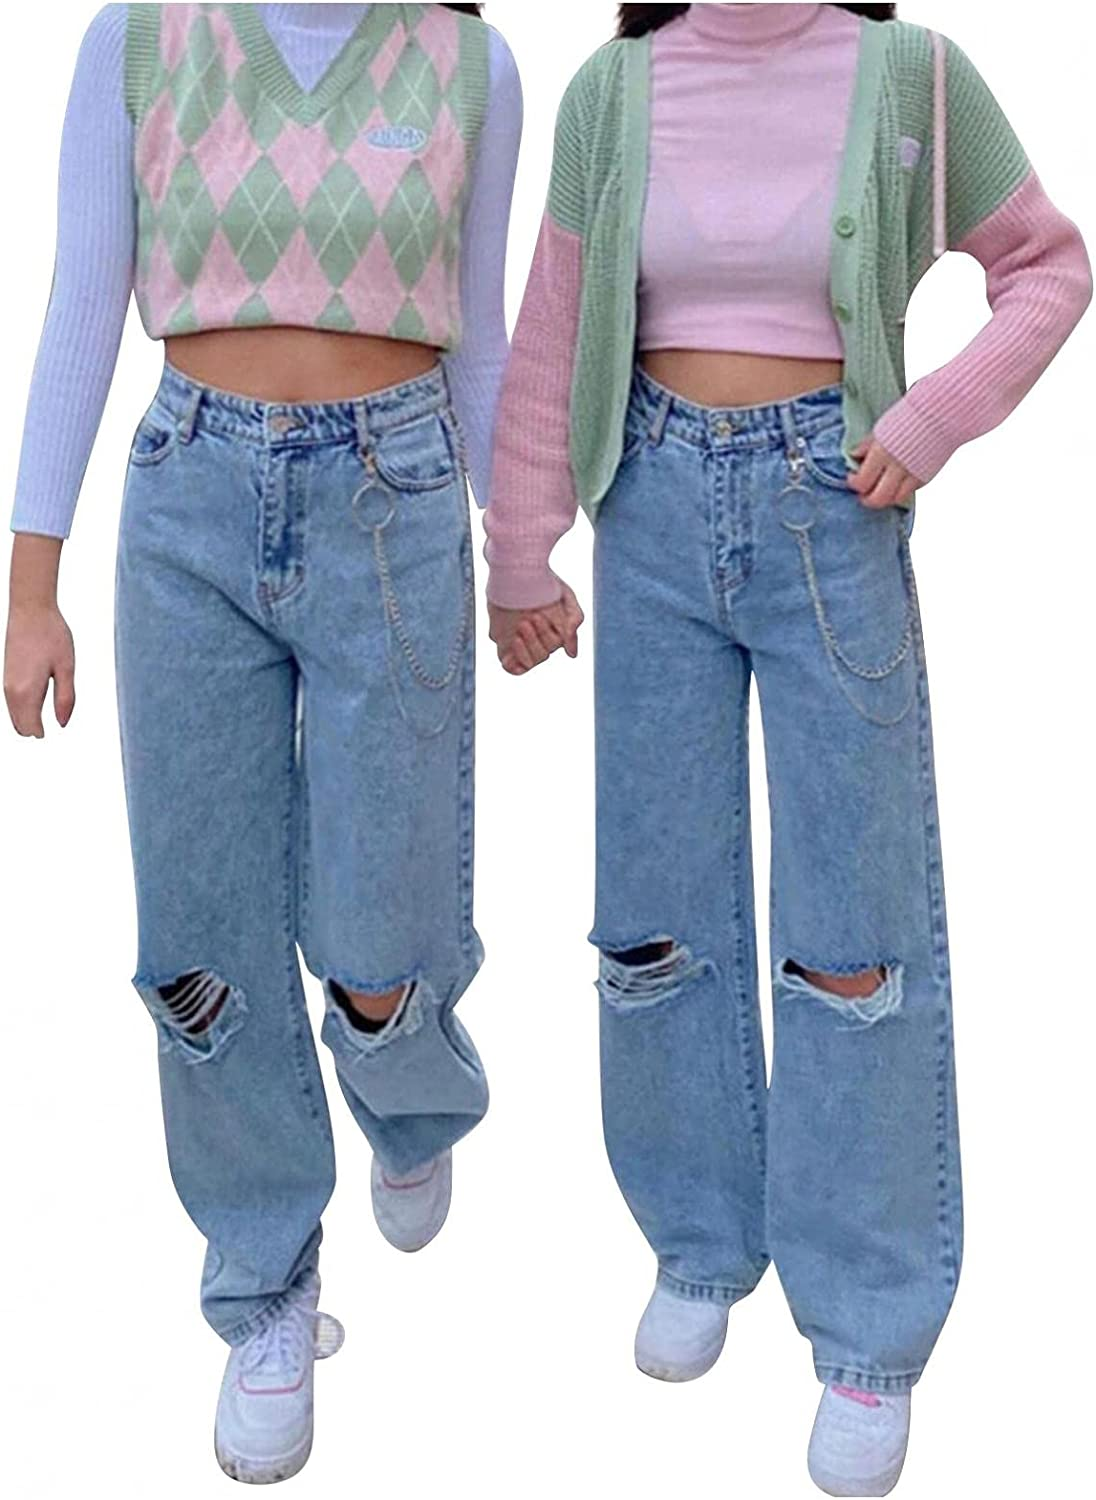 Lingbing Fashion Y2K Jeans, Women High Waist Wide Leg Vintage Butterfly Pants Loose Casual Baggy Trousers Ripped Pants